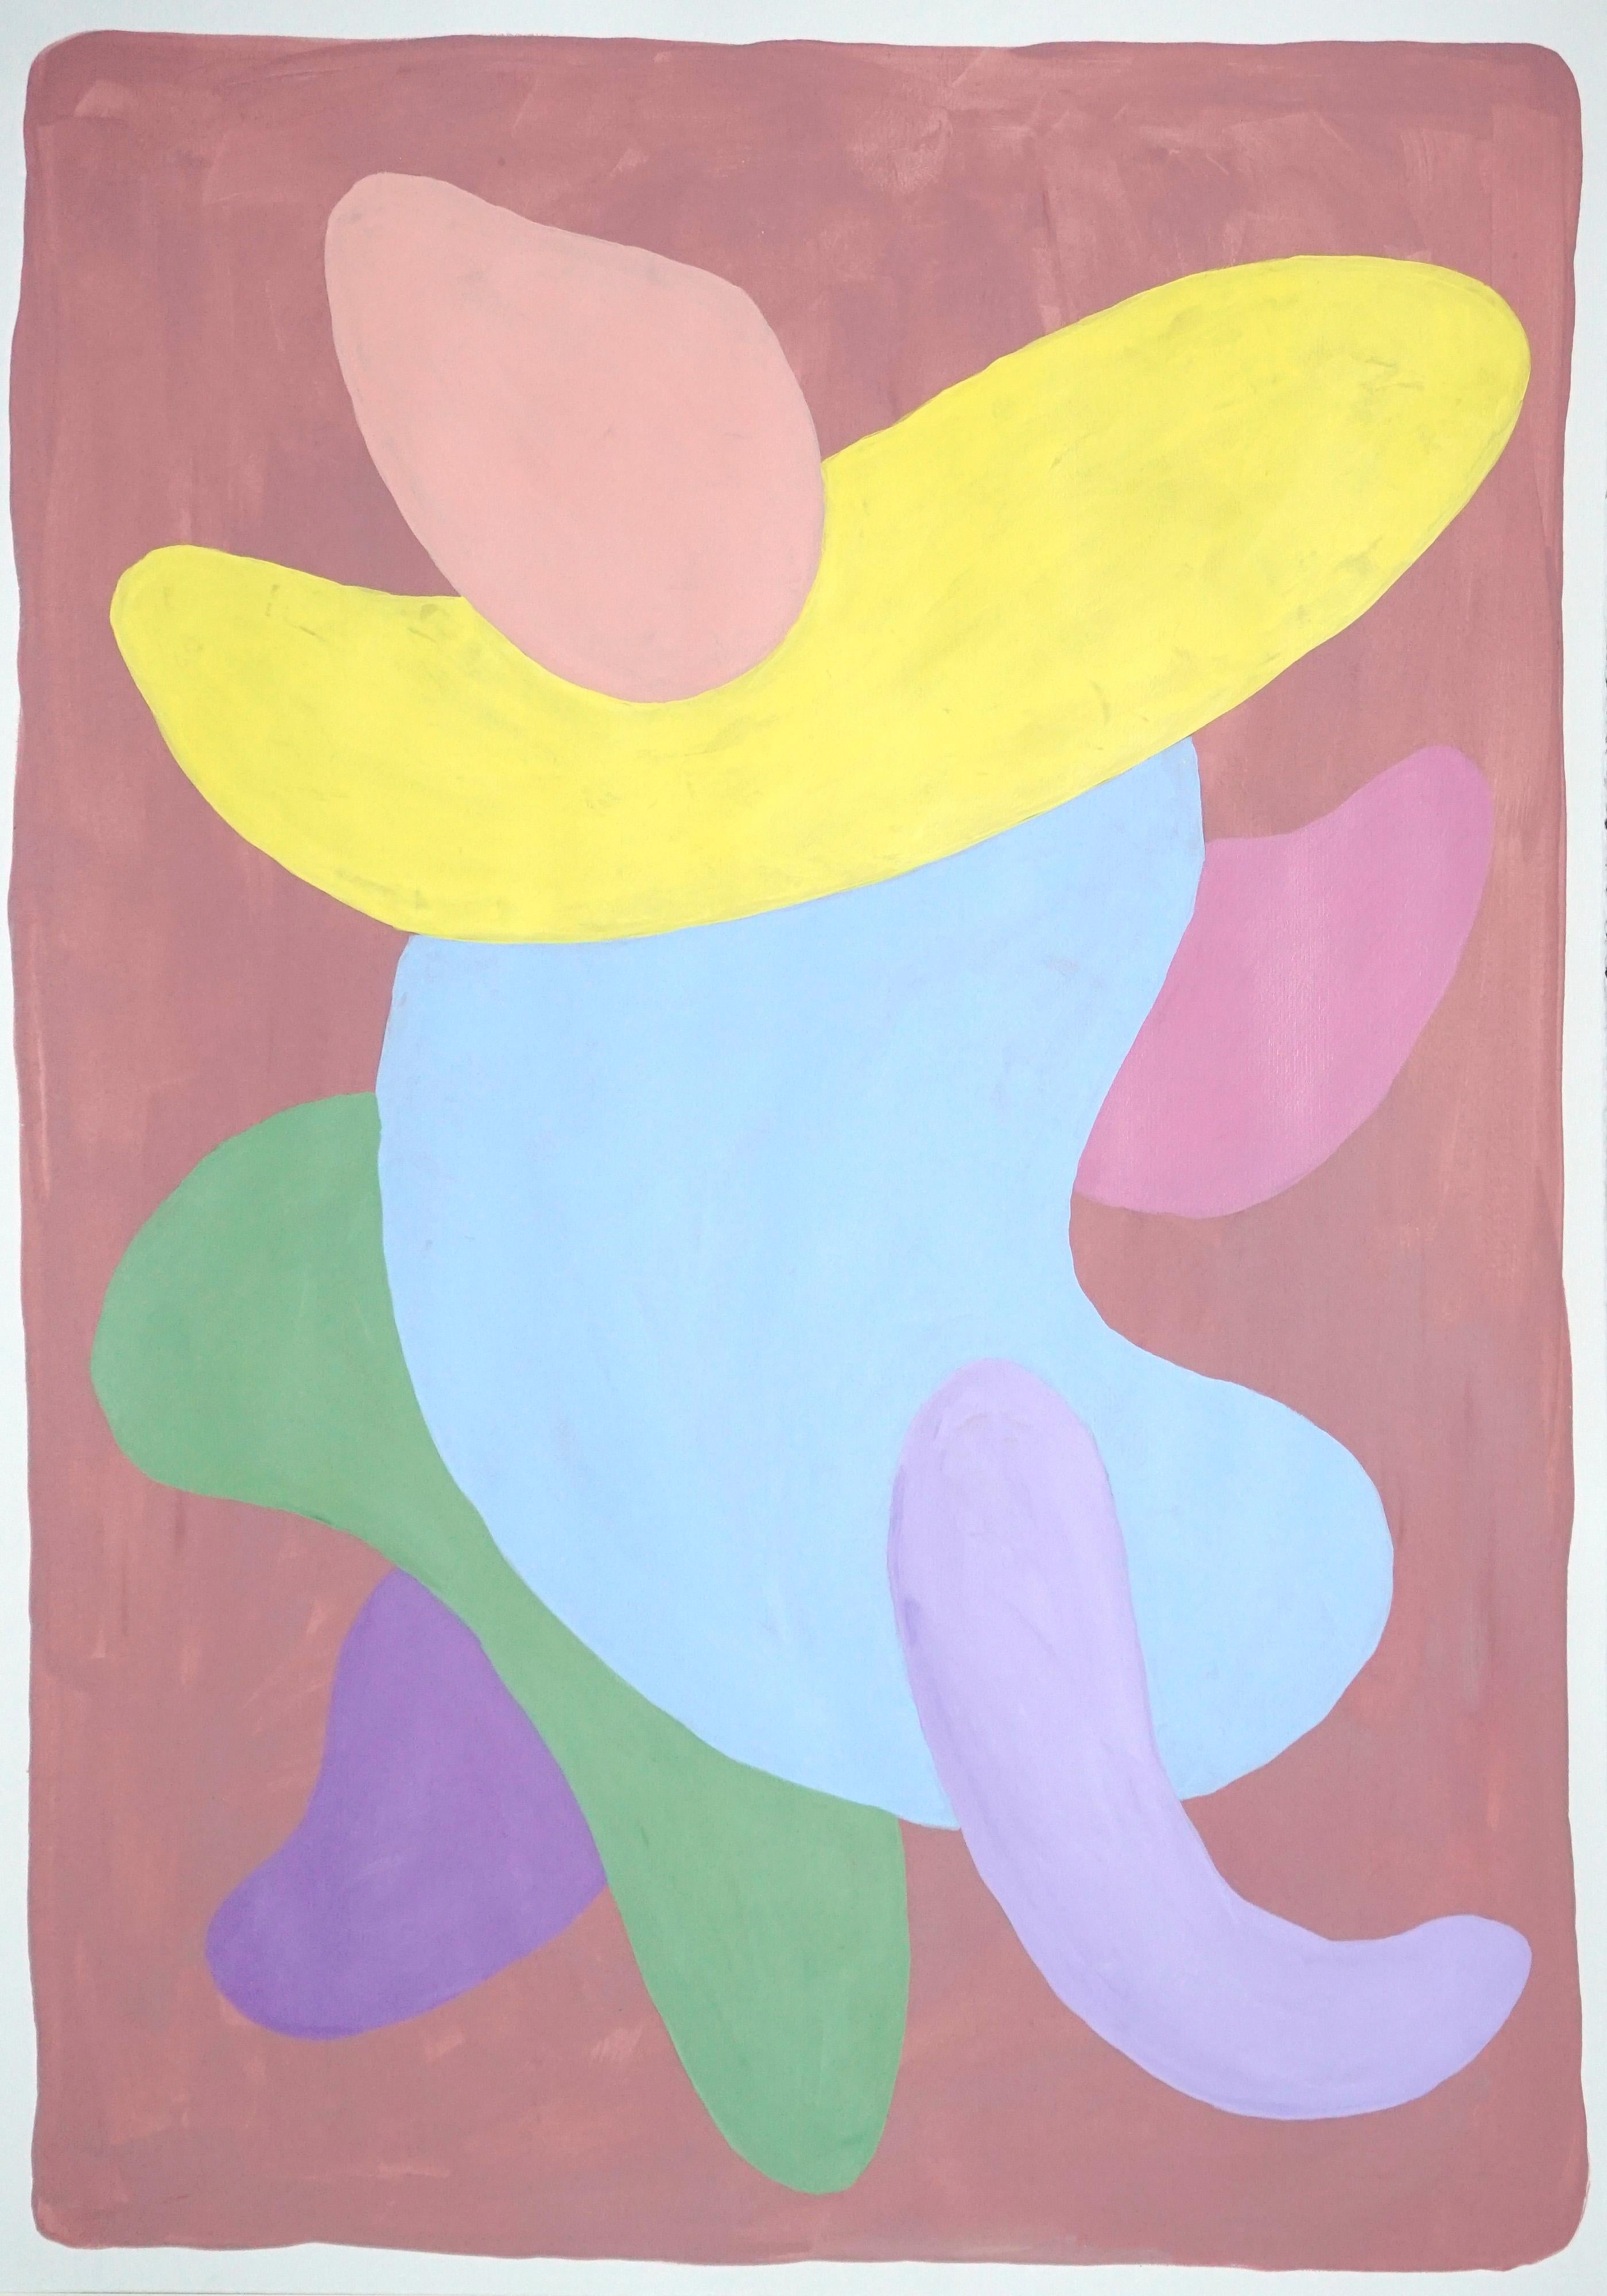 Abstract Figure Painting of Pastel Art Deco Tones, Pink, Purple and Mauve, 2021